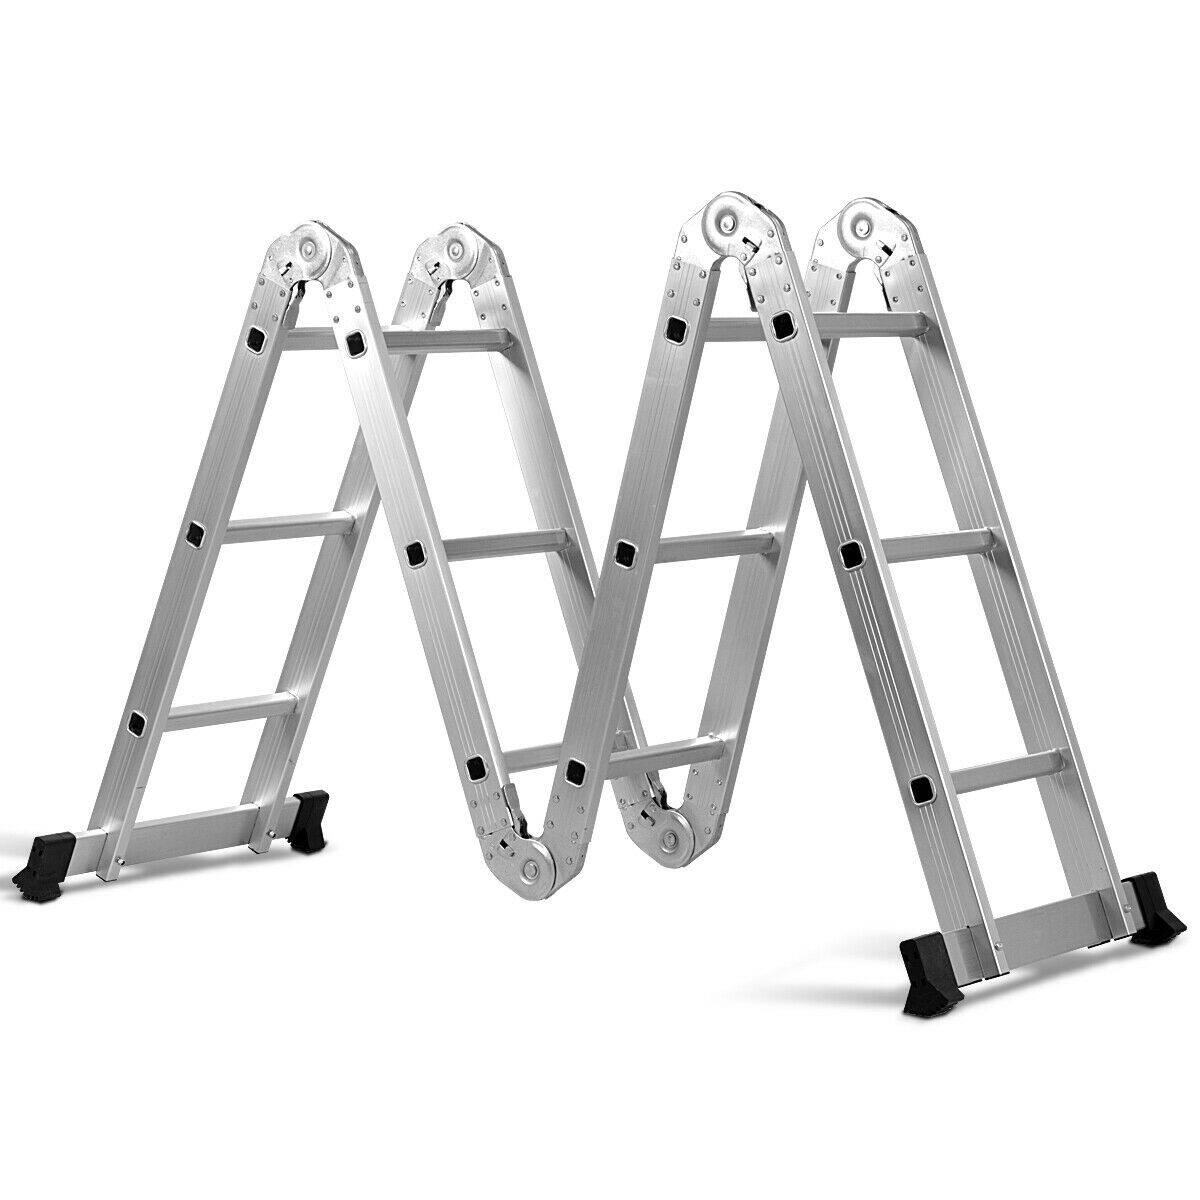 Costway 12.5' 12-Step Multi Purpose Aluminum Folding Scaffold Ladder + $76.95 + FS